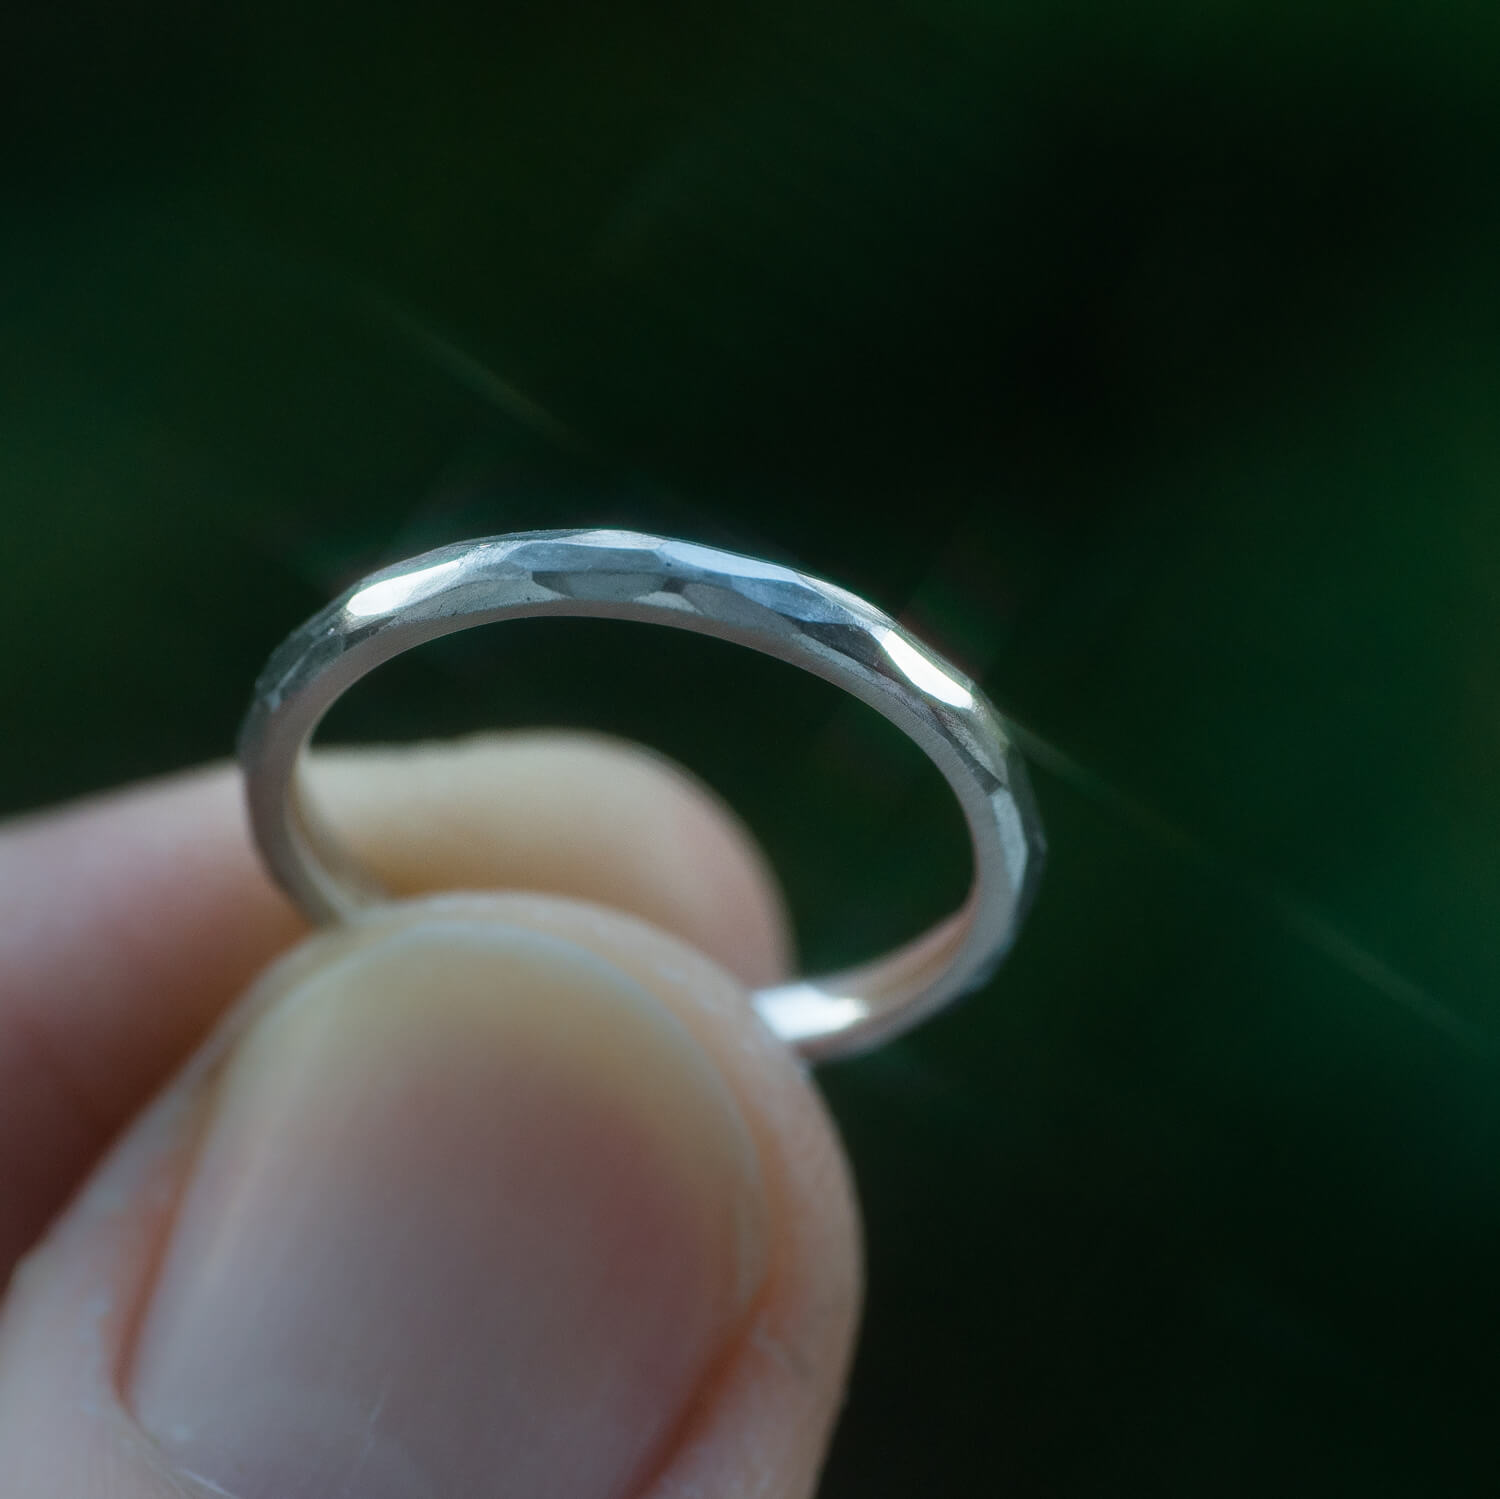 2.0mm platinum wedding ring with hammered texture, in the green of Yakushima Island